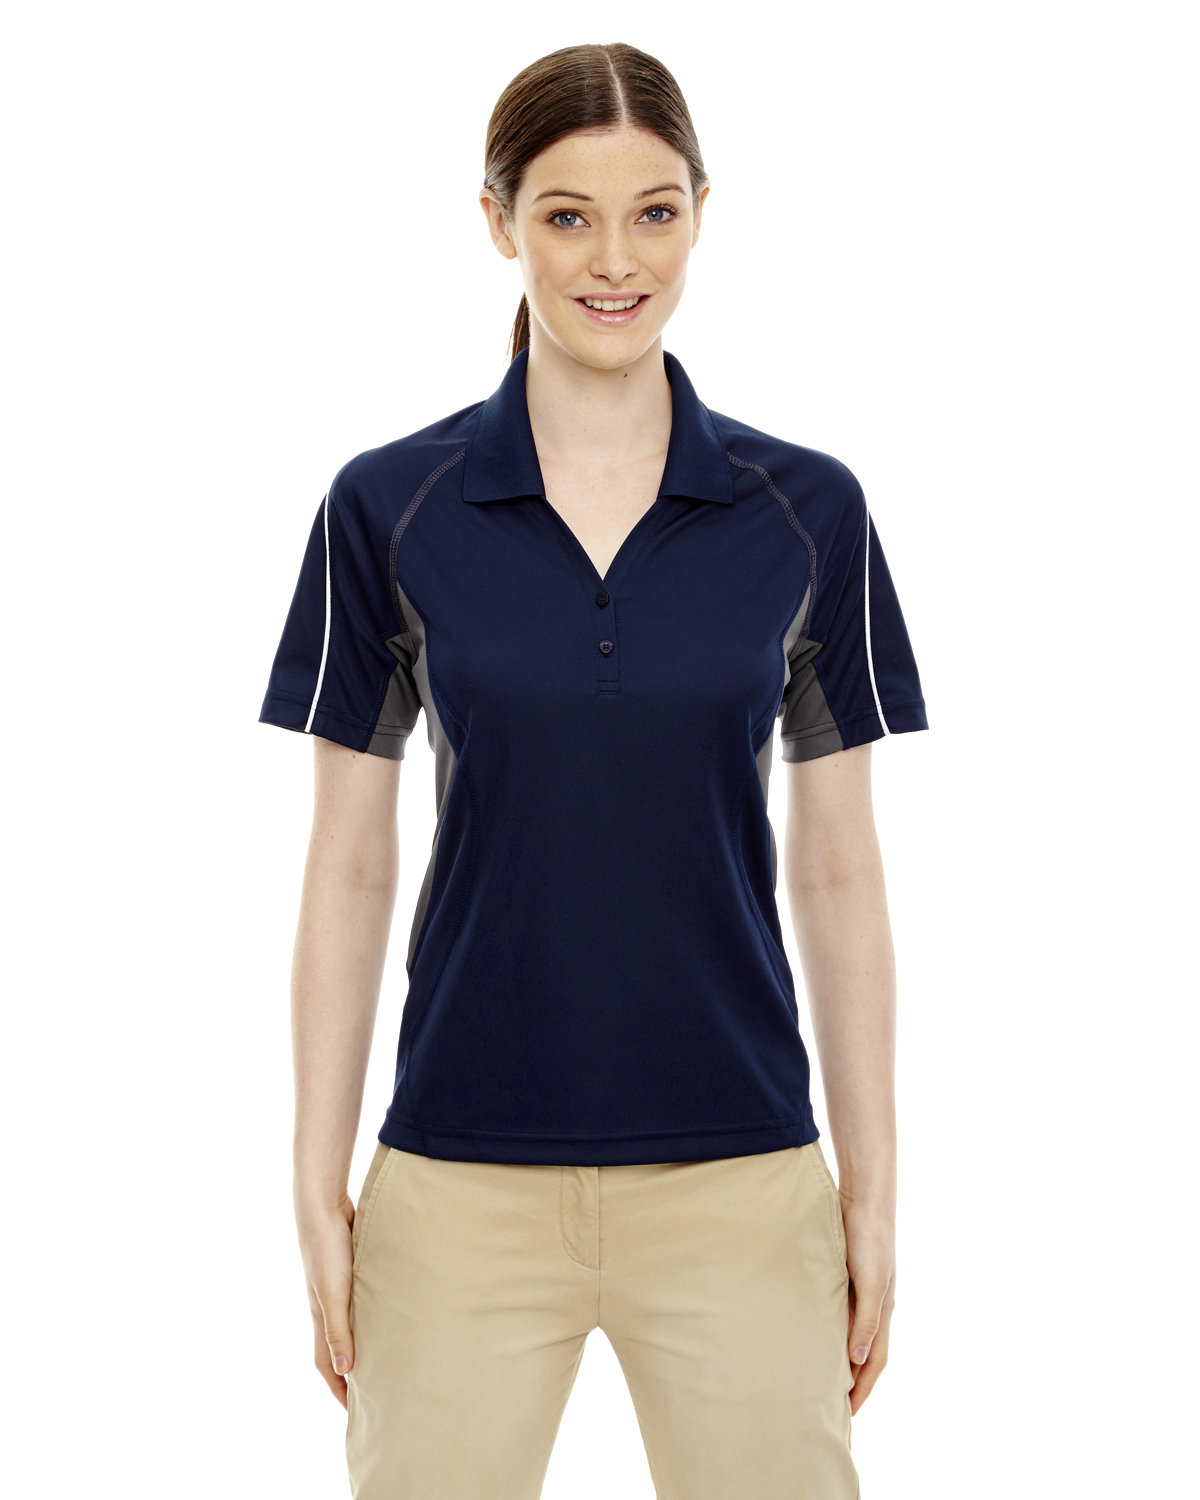 Extreme Ladies' Eperformance™ Parallel Snag Protection Polo with Piping CLASSIC NAVY